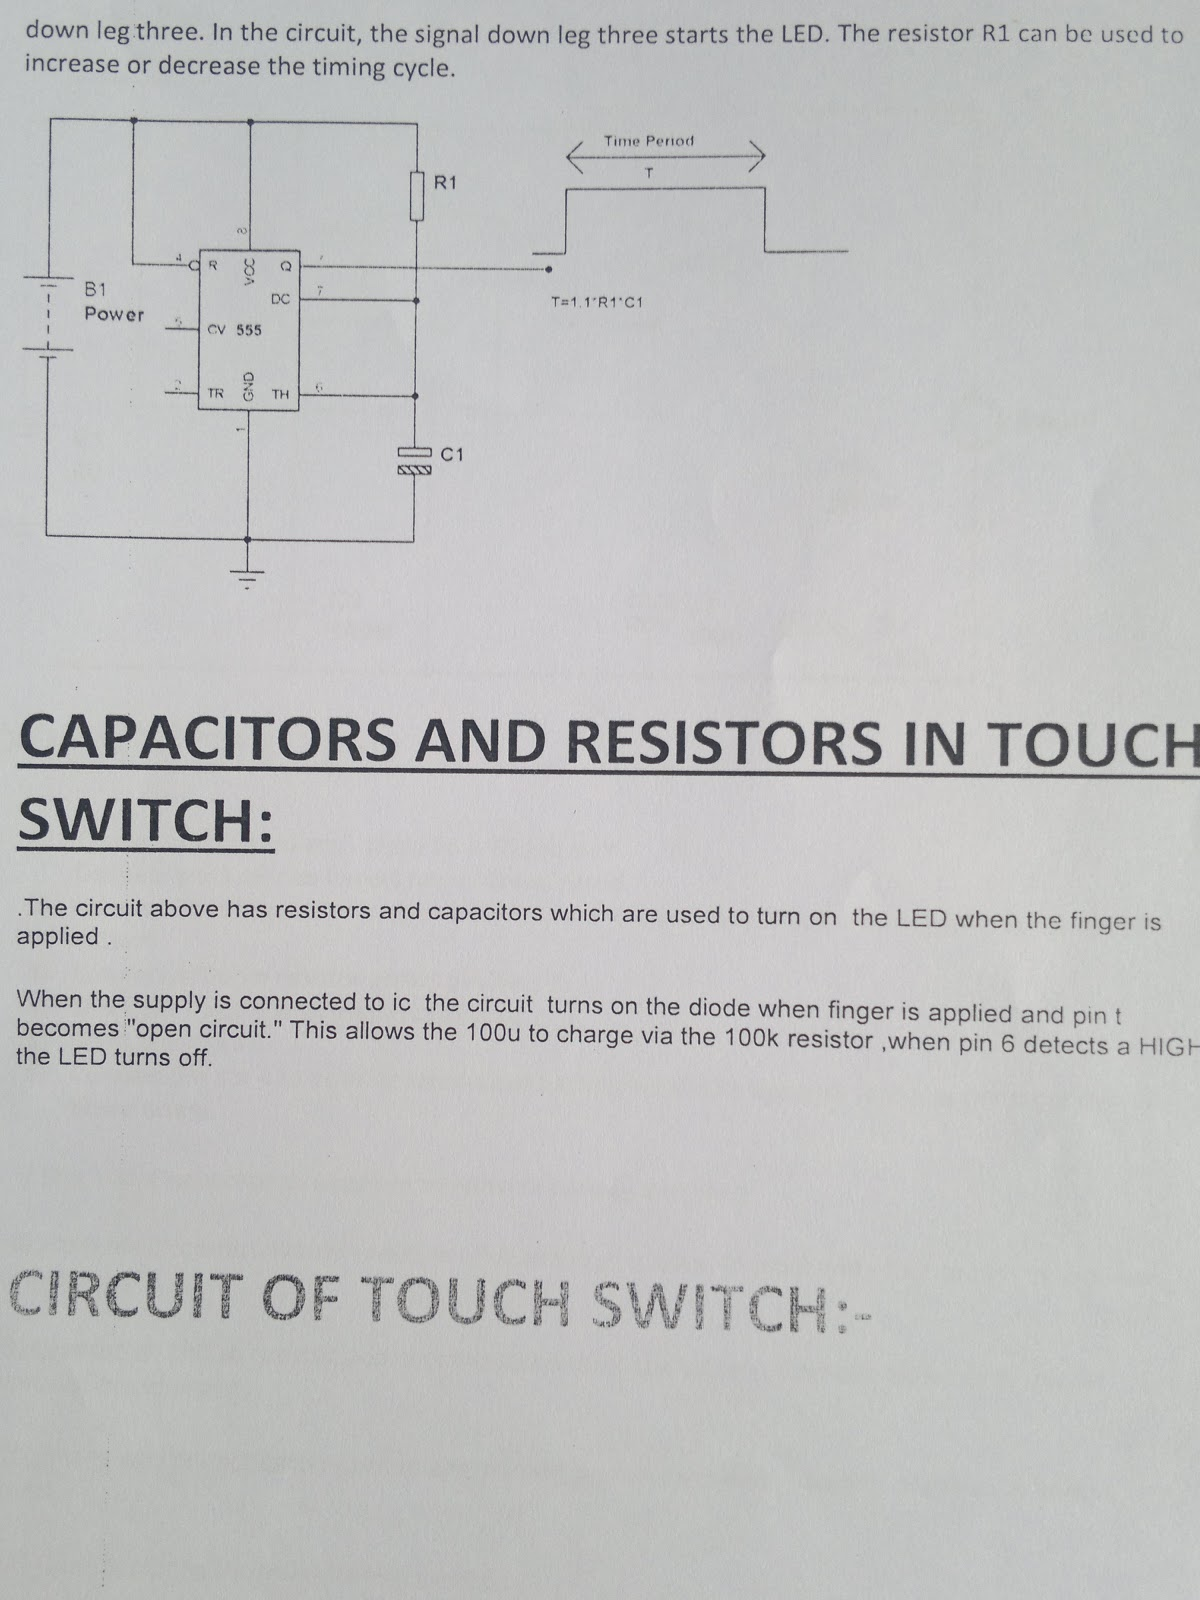 Mobile Zone Touch Switch Circuit Diagram In Uet Peshawar Pakistan At The End Of Semester I Have A Copy It And This Is Format To Study Download Each Image